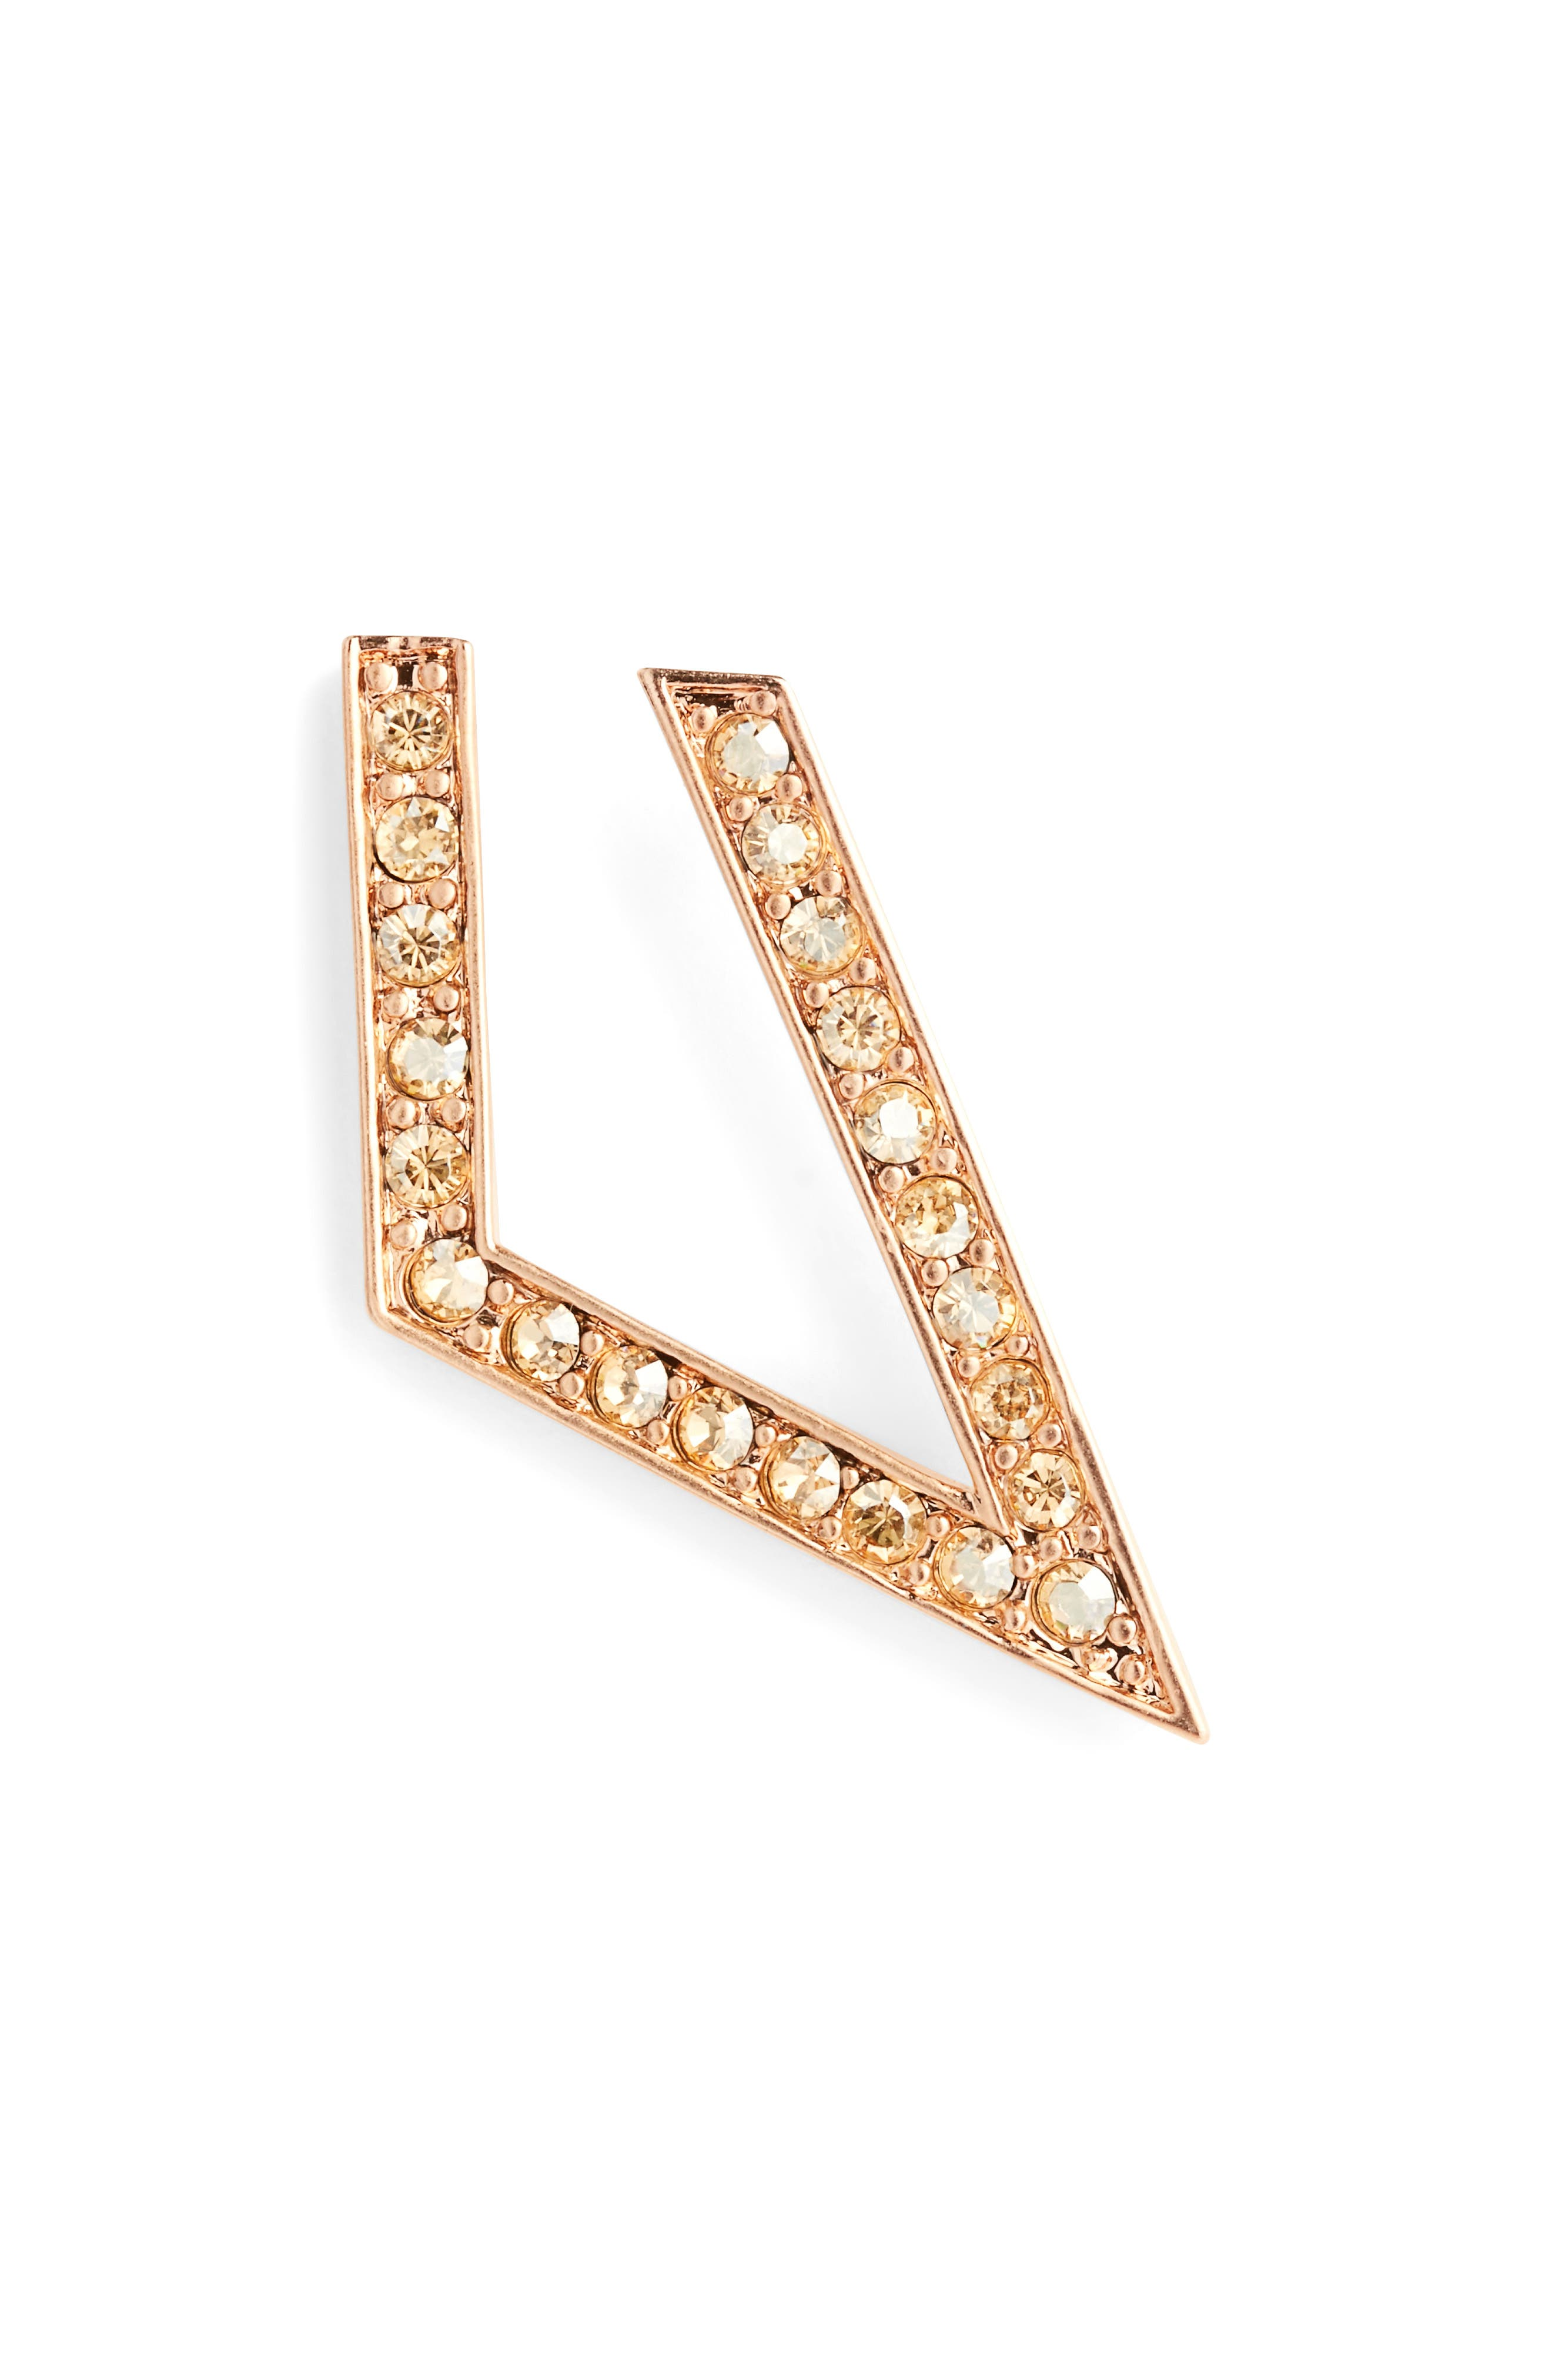 Main Image - St. John Collection Swarovski Crystal Angular Hoop Earrings